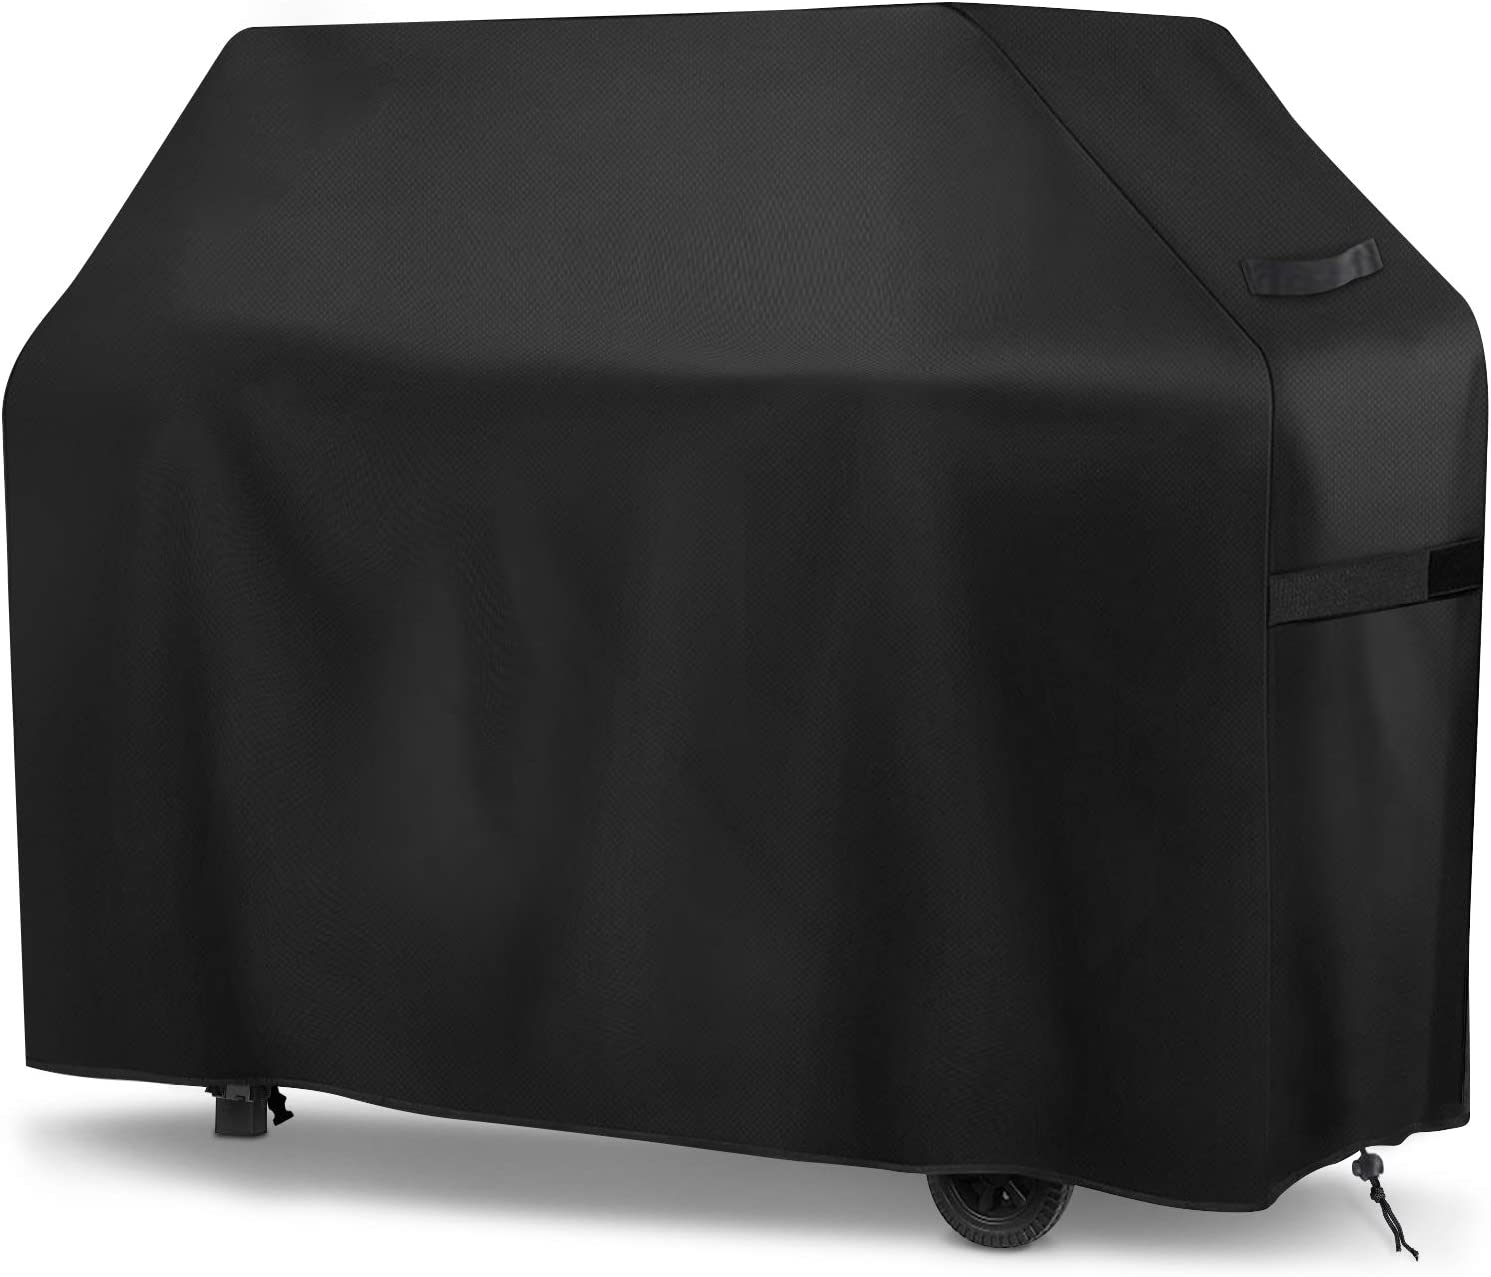 NASUM Grill Cover, 31-inch Waterproof Heavy Duty Gas Grill Covers, 600D BBQ Cover for Barbeque Grill of Weber, Brinkmann, Char-Broil, Jenn Air and Holland (31